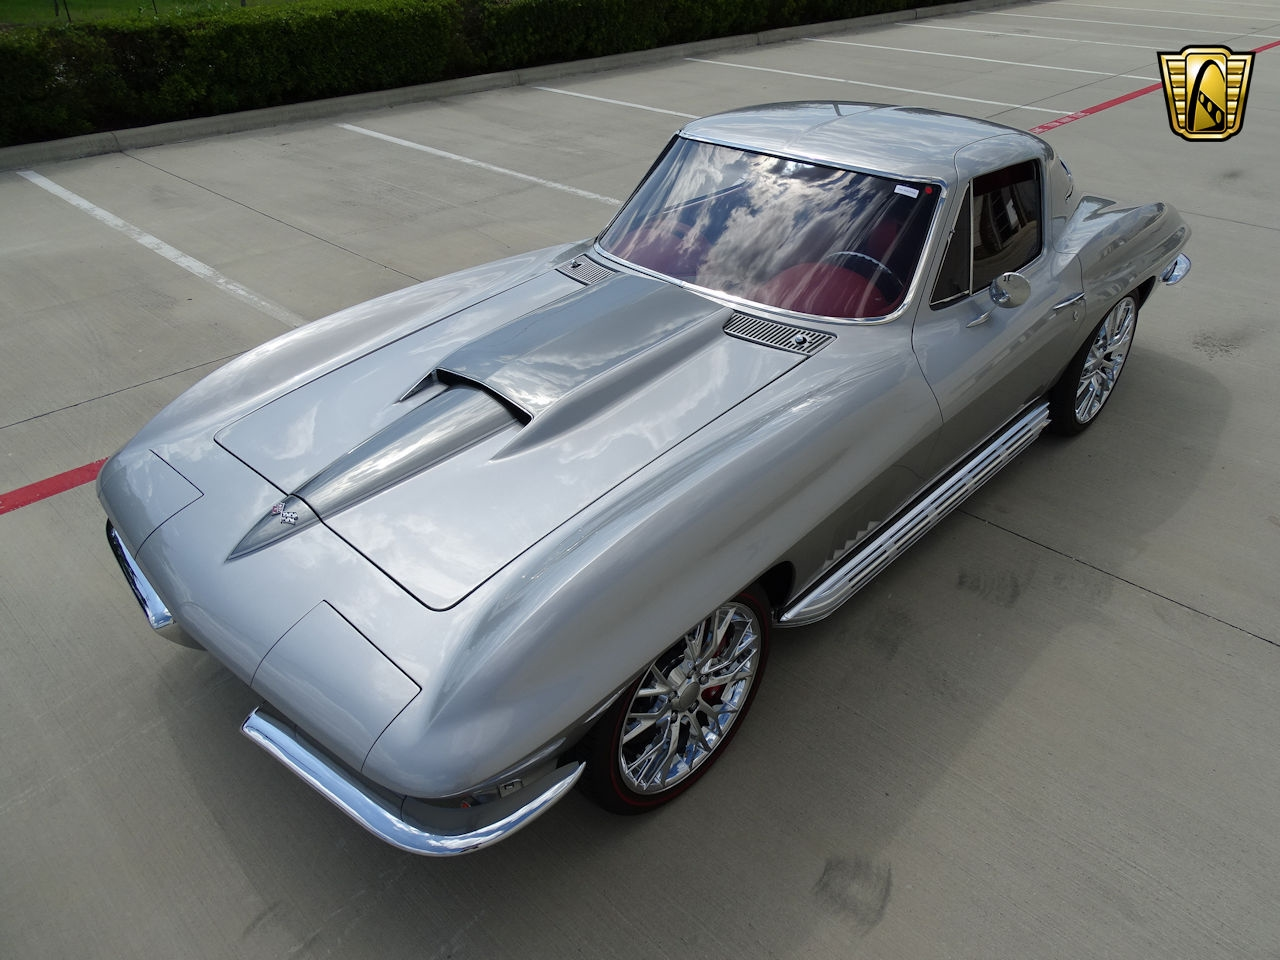 Check out thisJeff Hayes' built 1967 Chevrolet Corvette for sale in Houston, Texas!